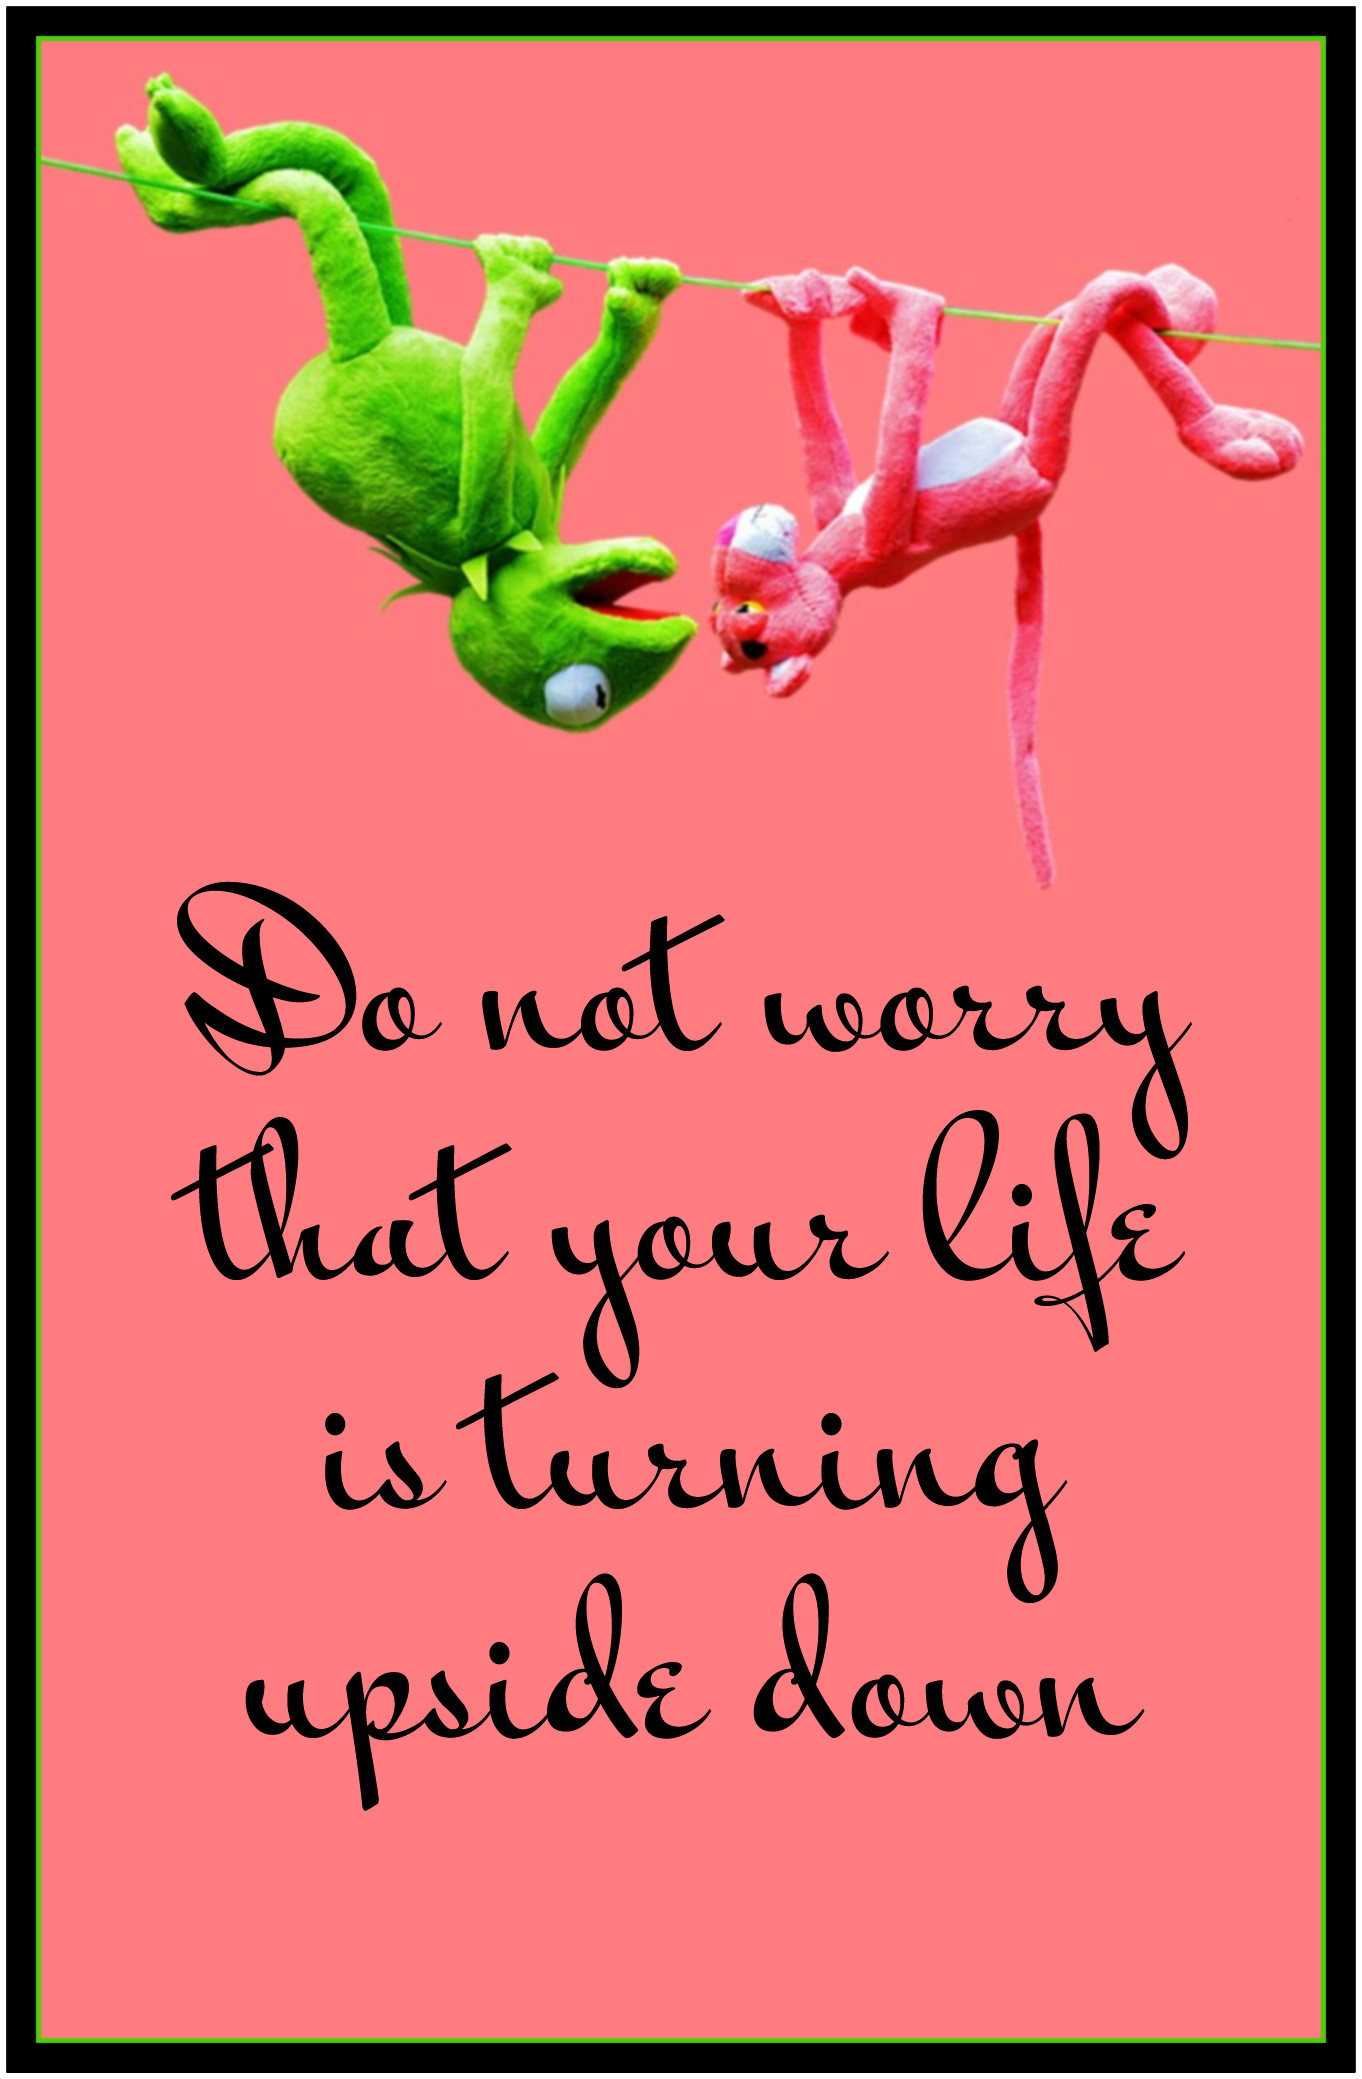 Quote do not worry that your life is turning upside down Rumi beitschig blog